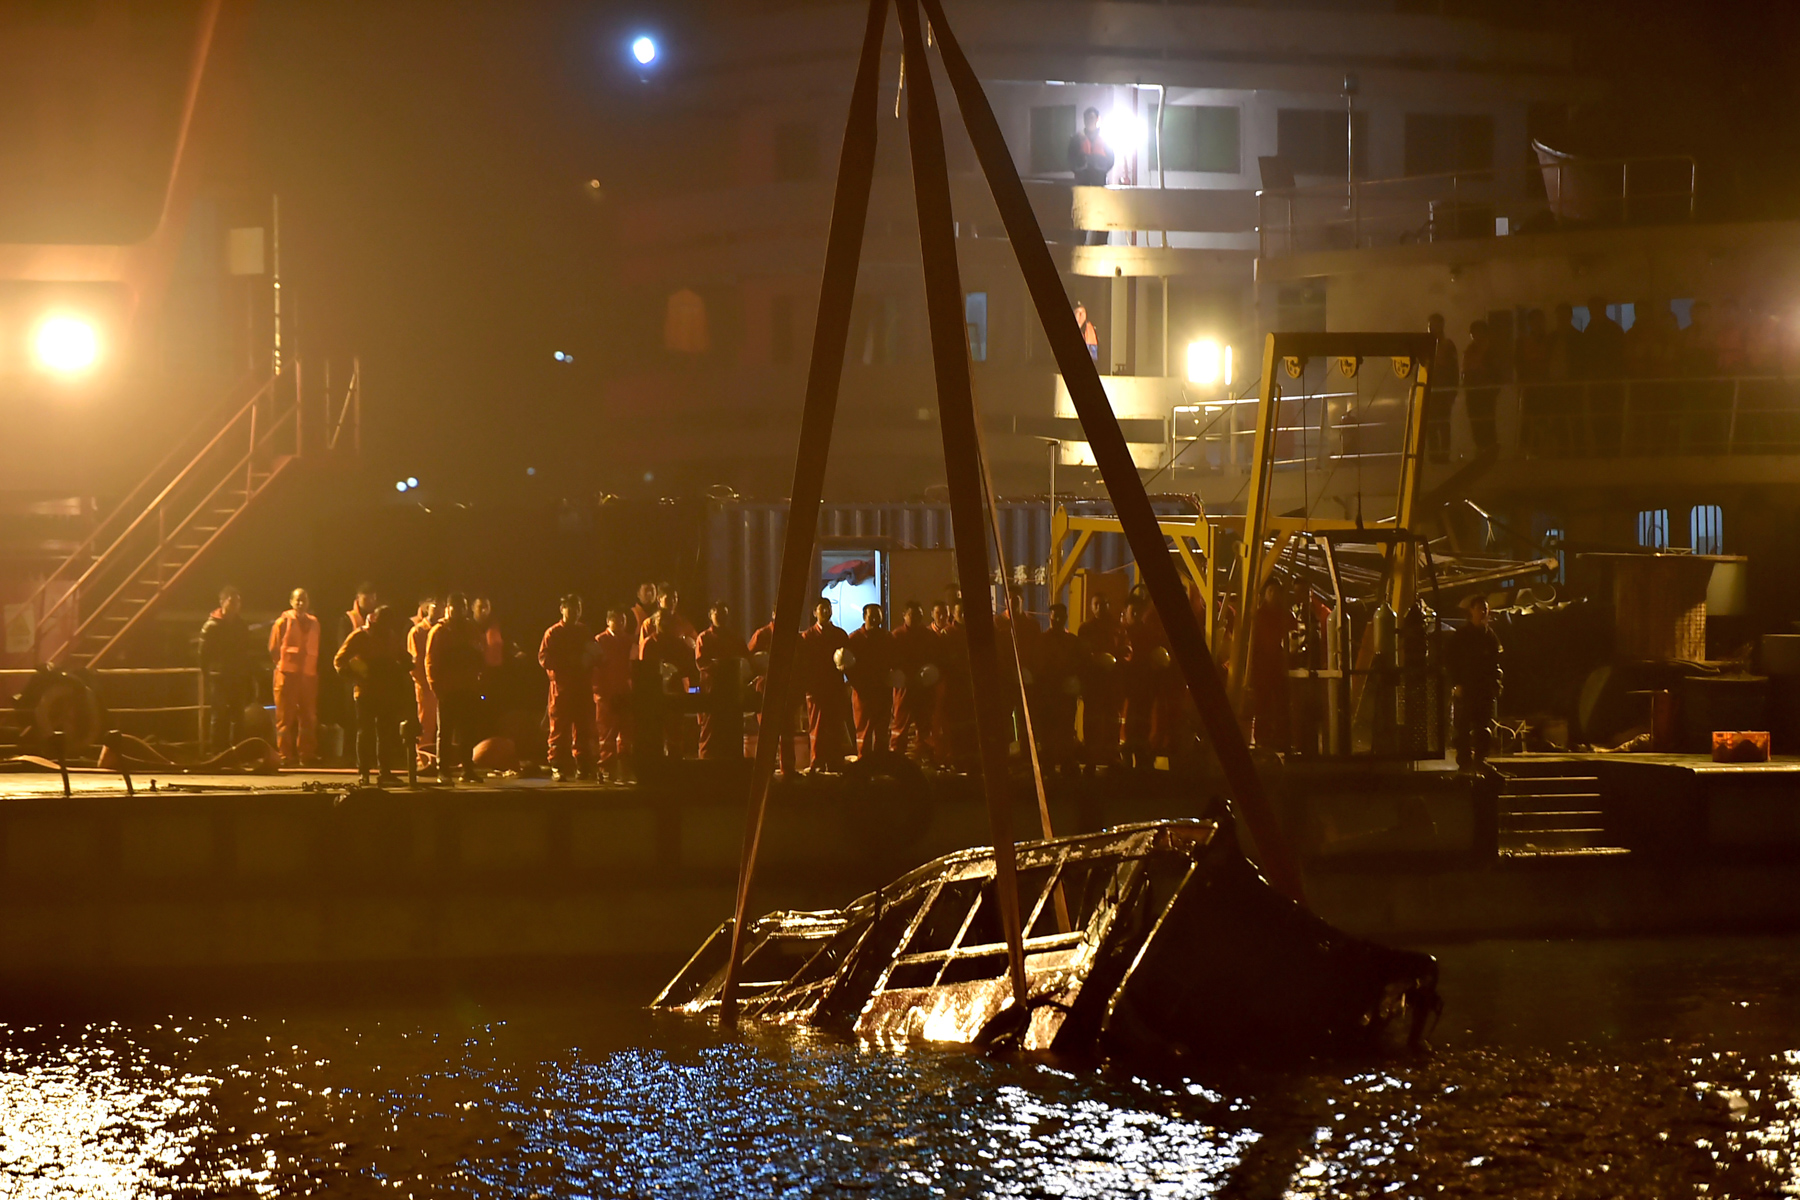 Rescuers watch as wreckage of a bus is lifted out of the Yangtze River in Wanzhou, Chongqing, October 31. The bus crashed and plunged into the river, leaving no survivors. A video released by the police shows that a passenger attacked the driver after she missed her stop and the driver refused to let her off halfway. The driver fought back and lost control of the bus. All 15 people, including the passenger and driver, died in the crash. (Chinatopix via AP Photo)